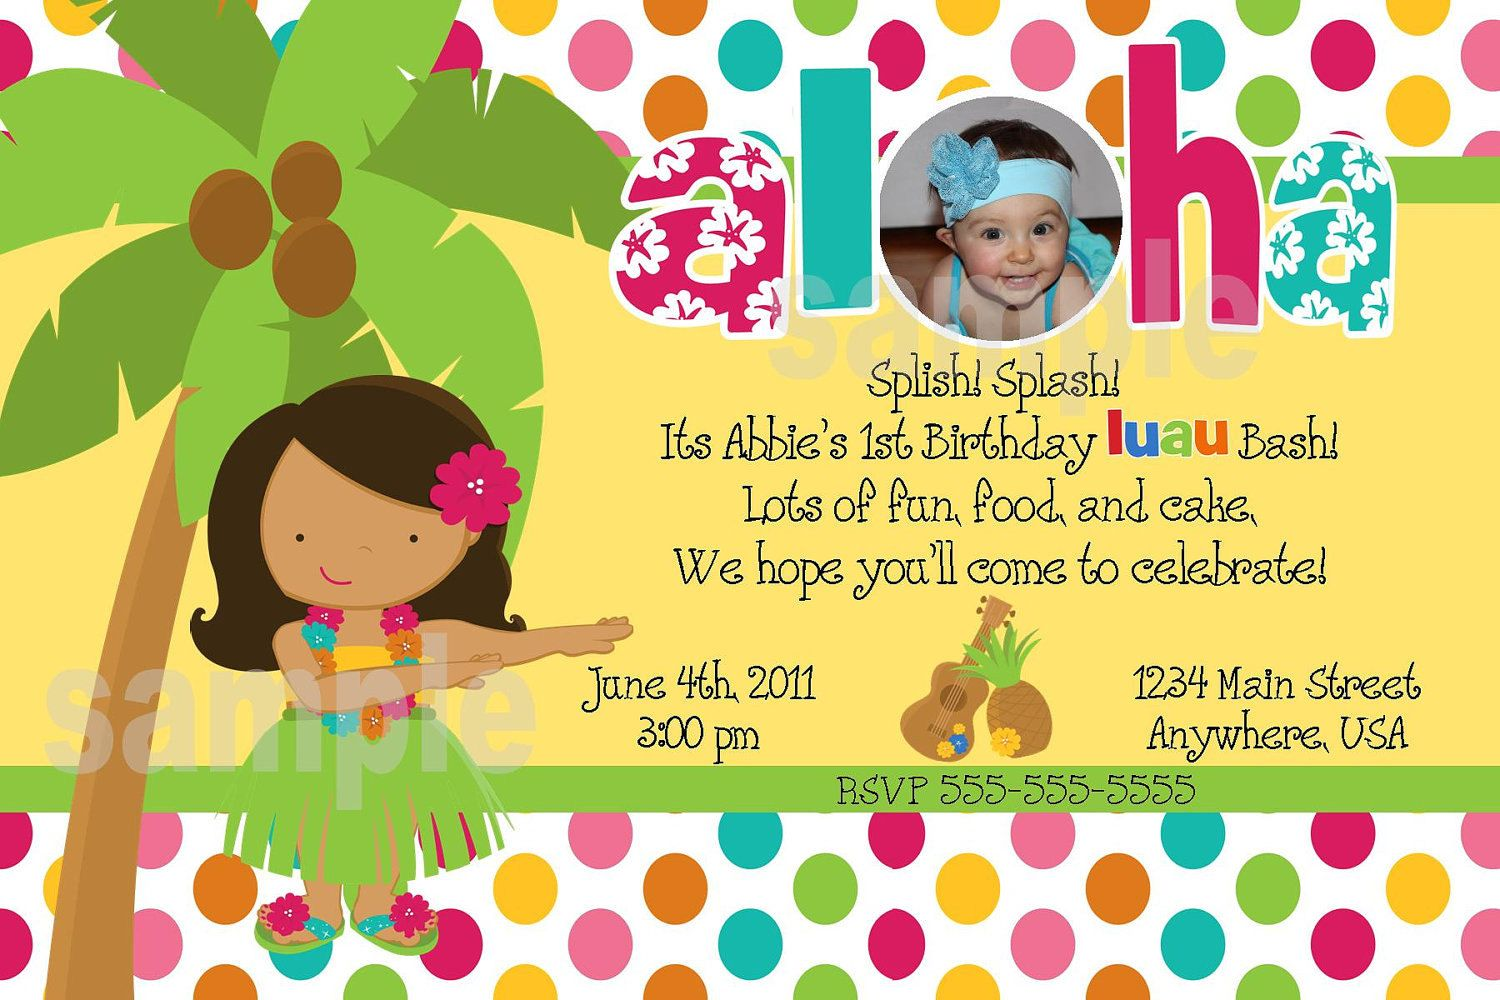 kids luau party ideas | Birthday Party Invitations For Kids